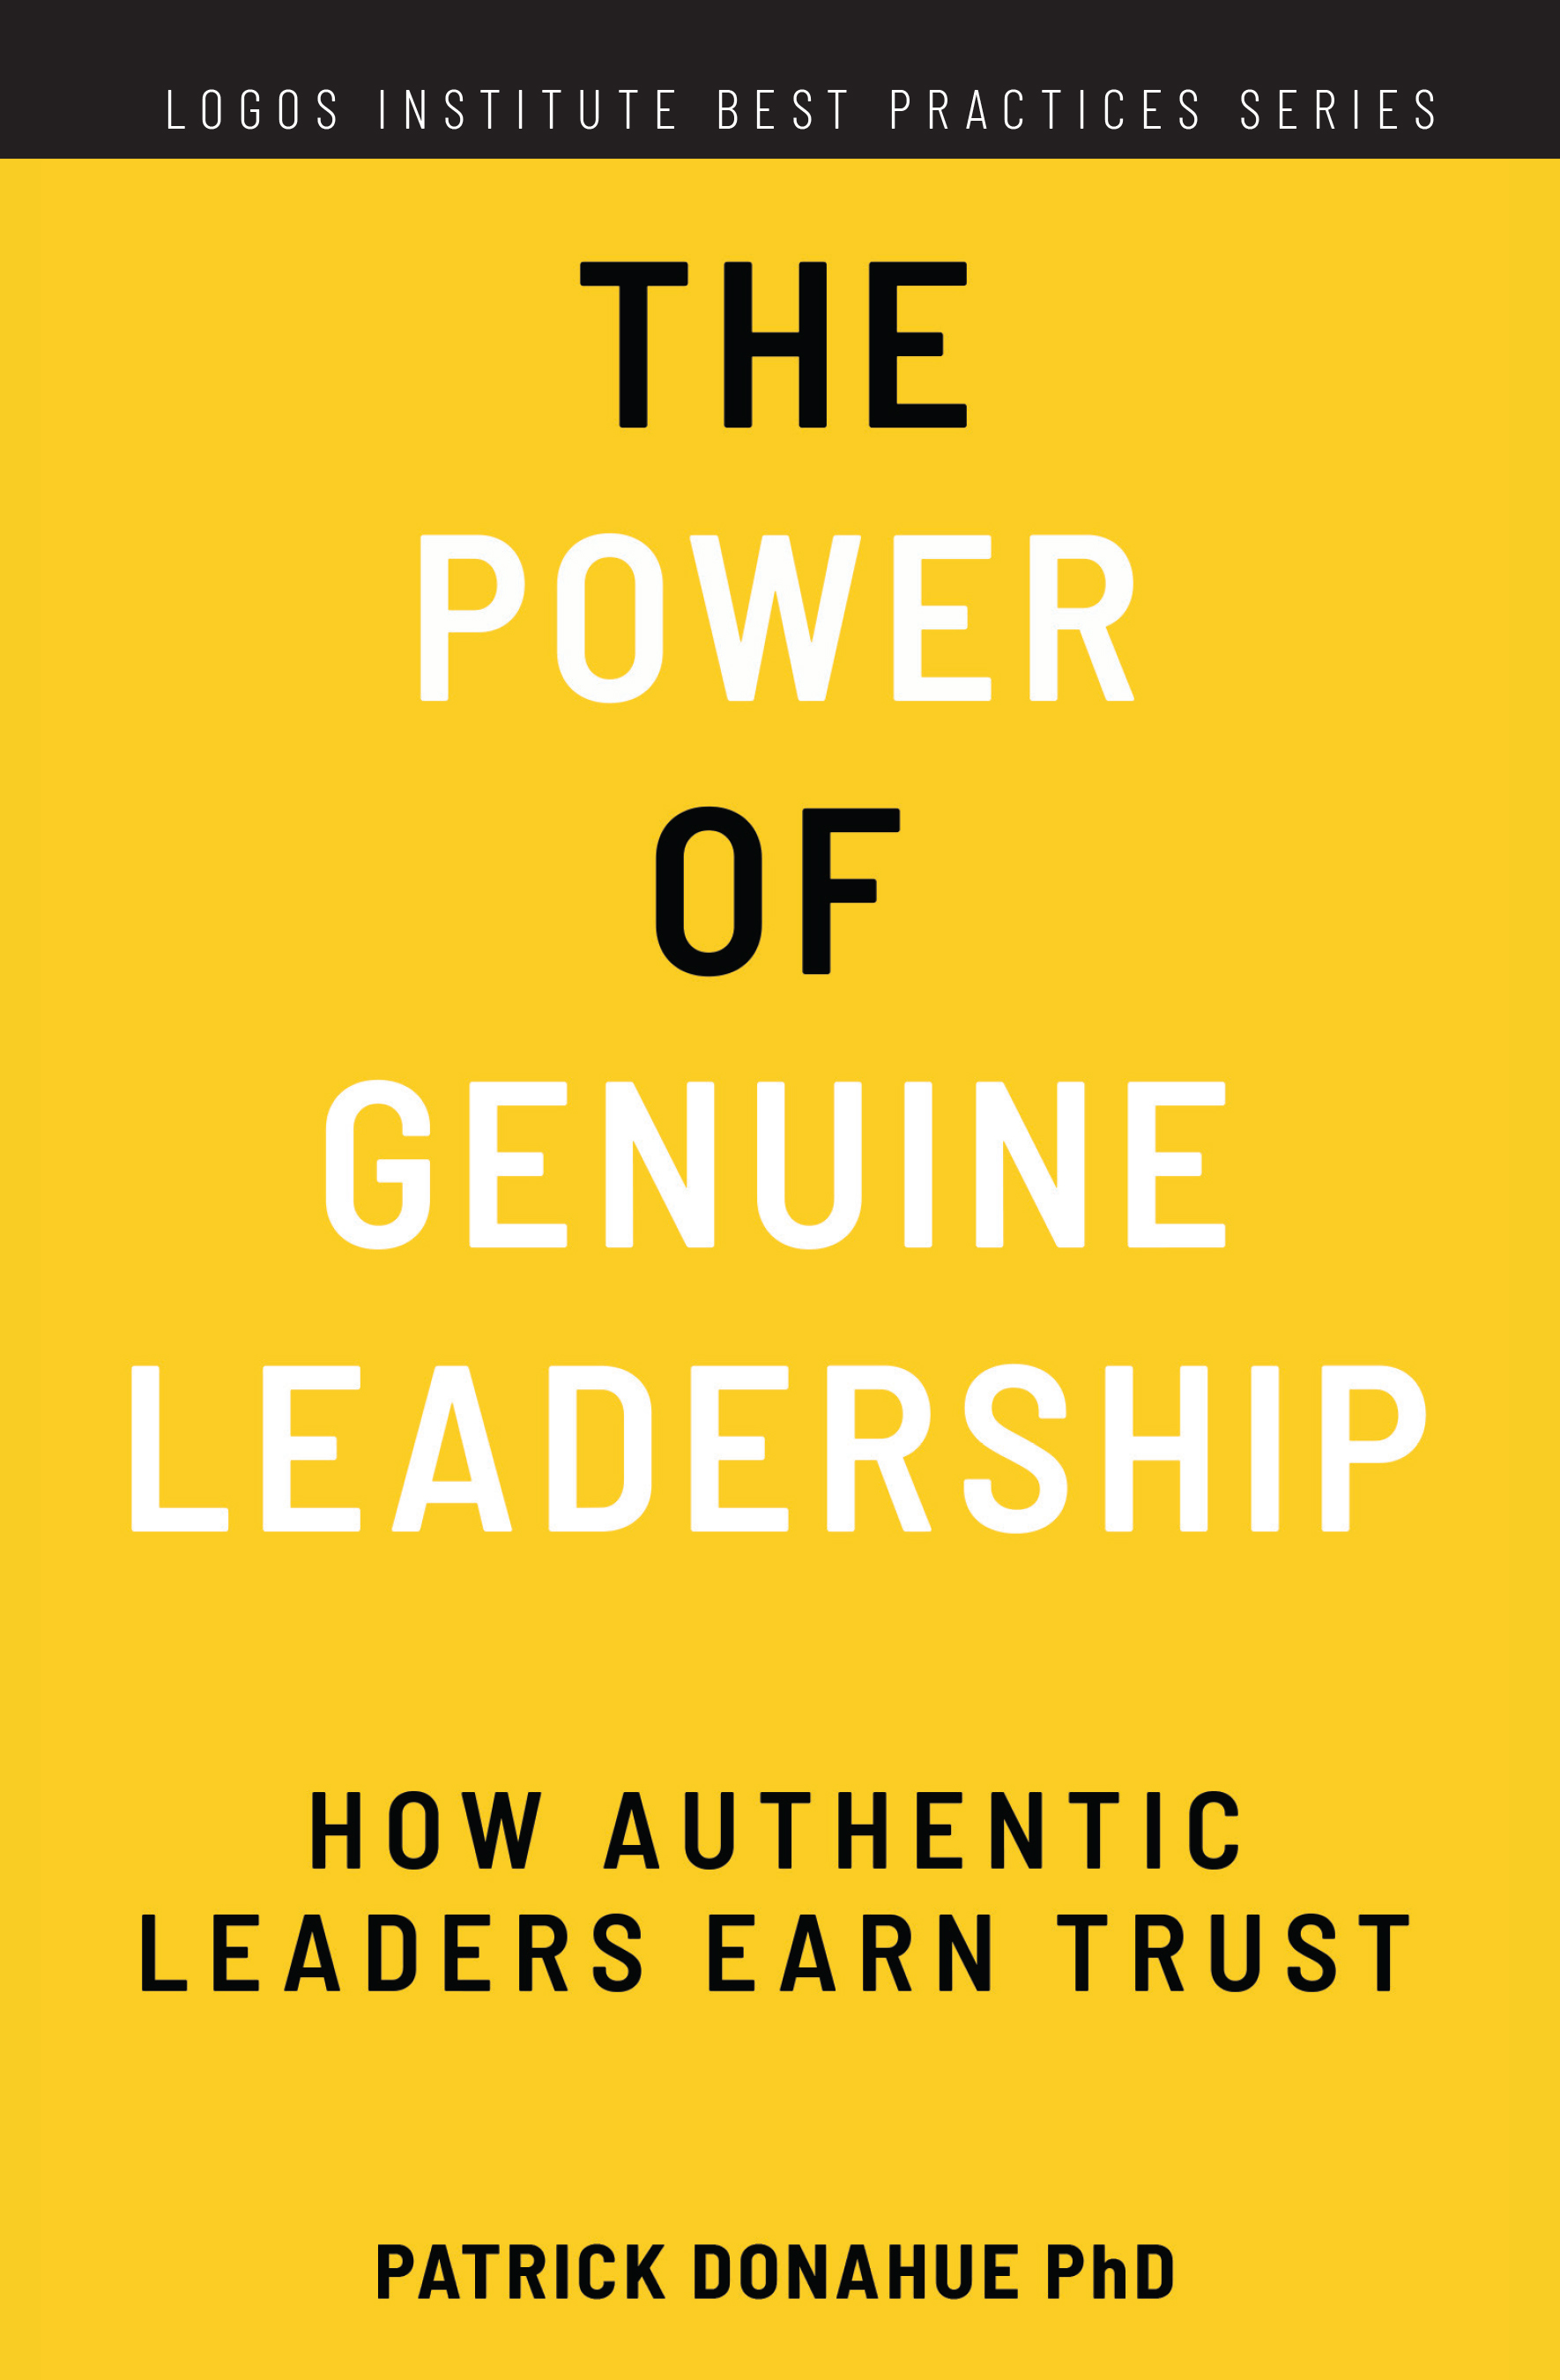 Logos Institute Press Publishes Its Third Title: 'The Power of Genuine Leadership'